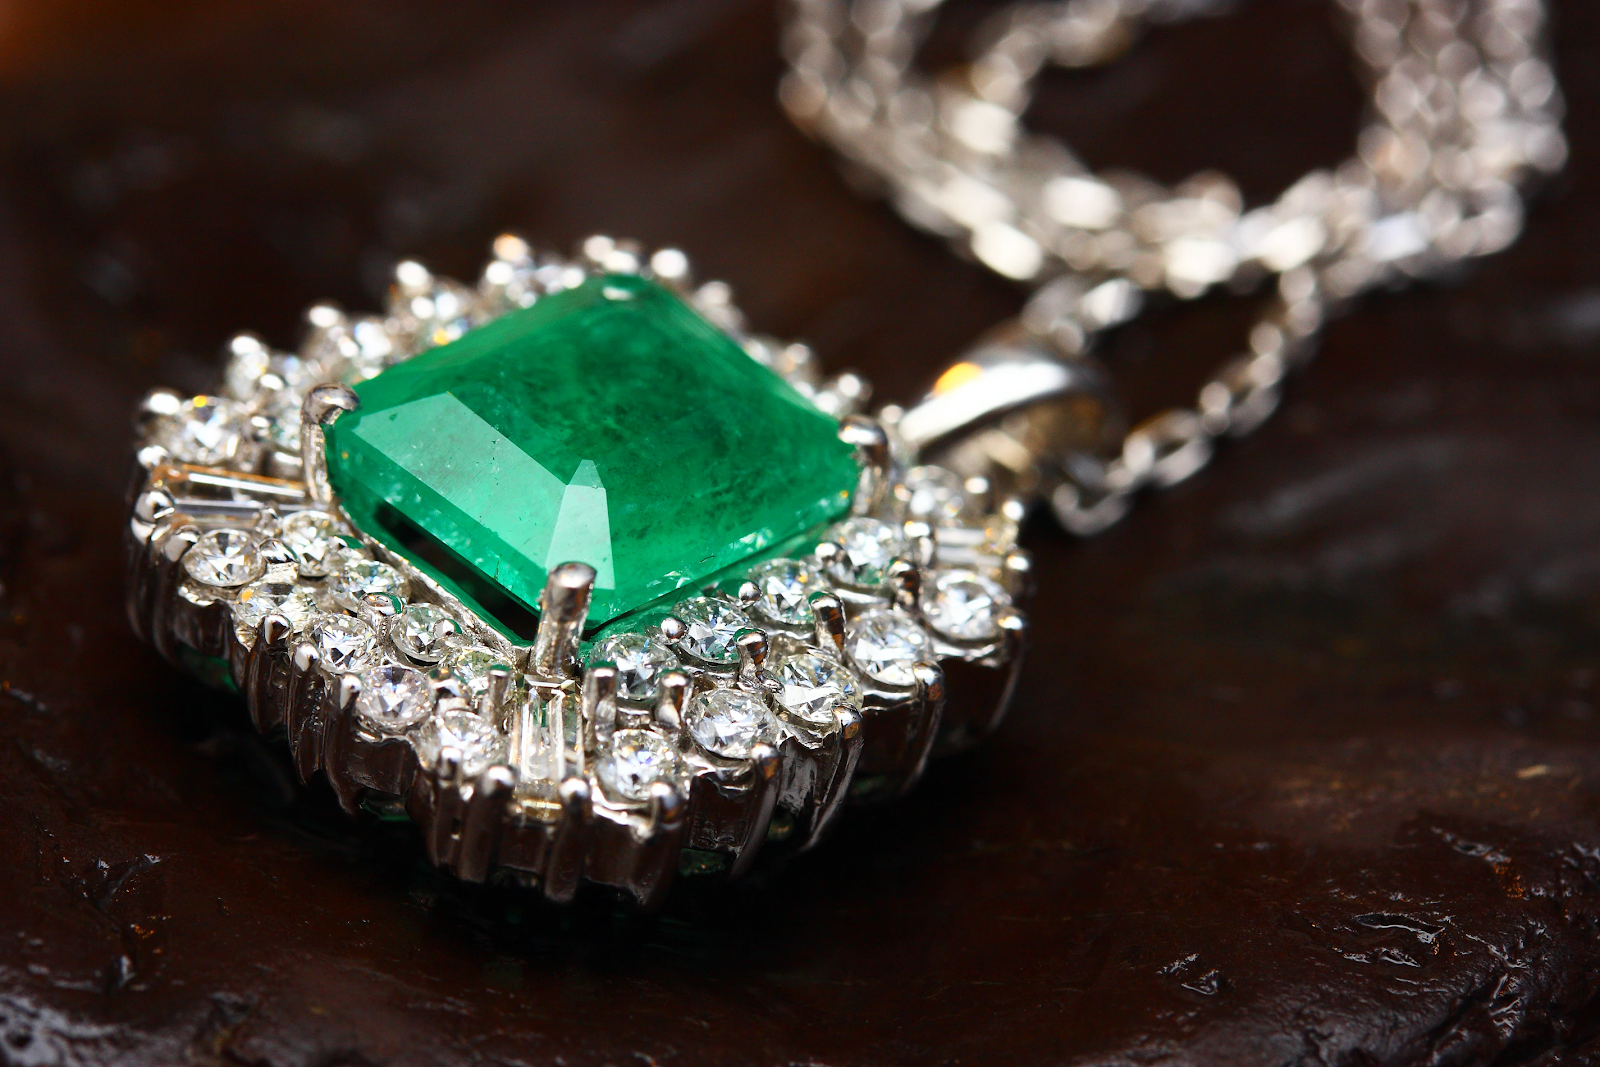 Everything you need to know about Emerald, the Birthstone of May